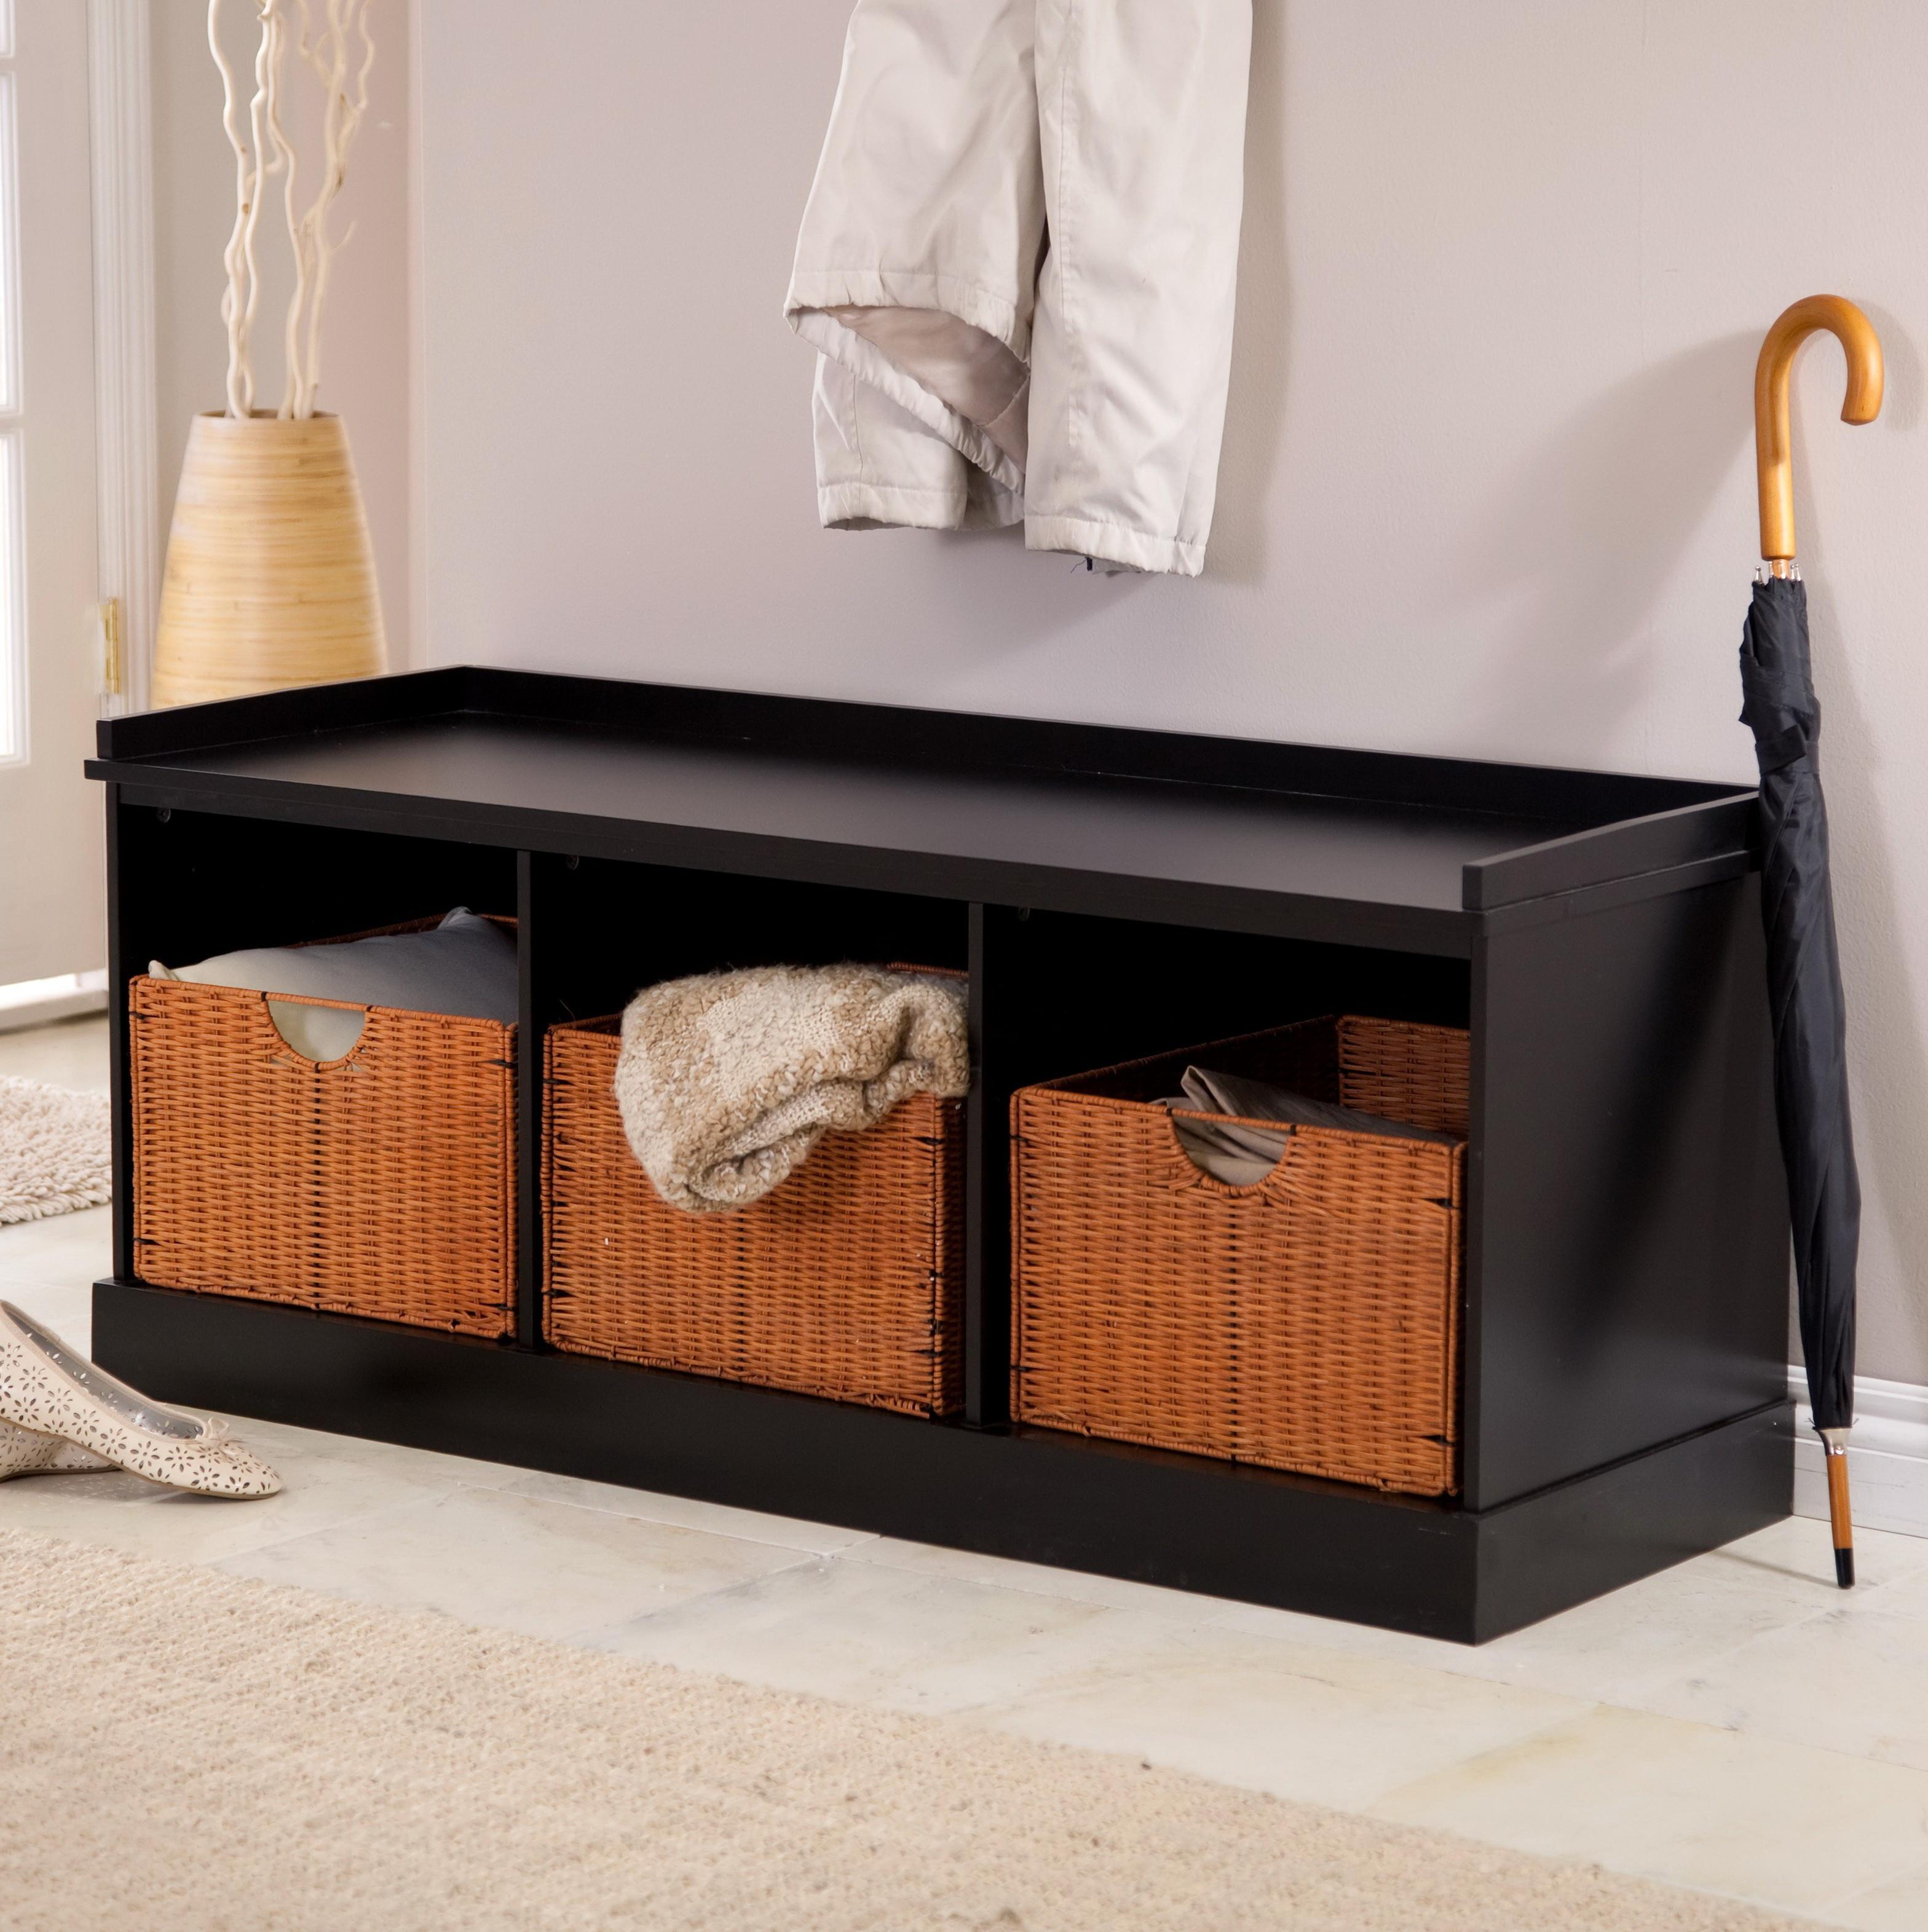 Furniture Black Storage Bench Baskets